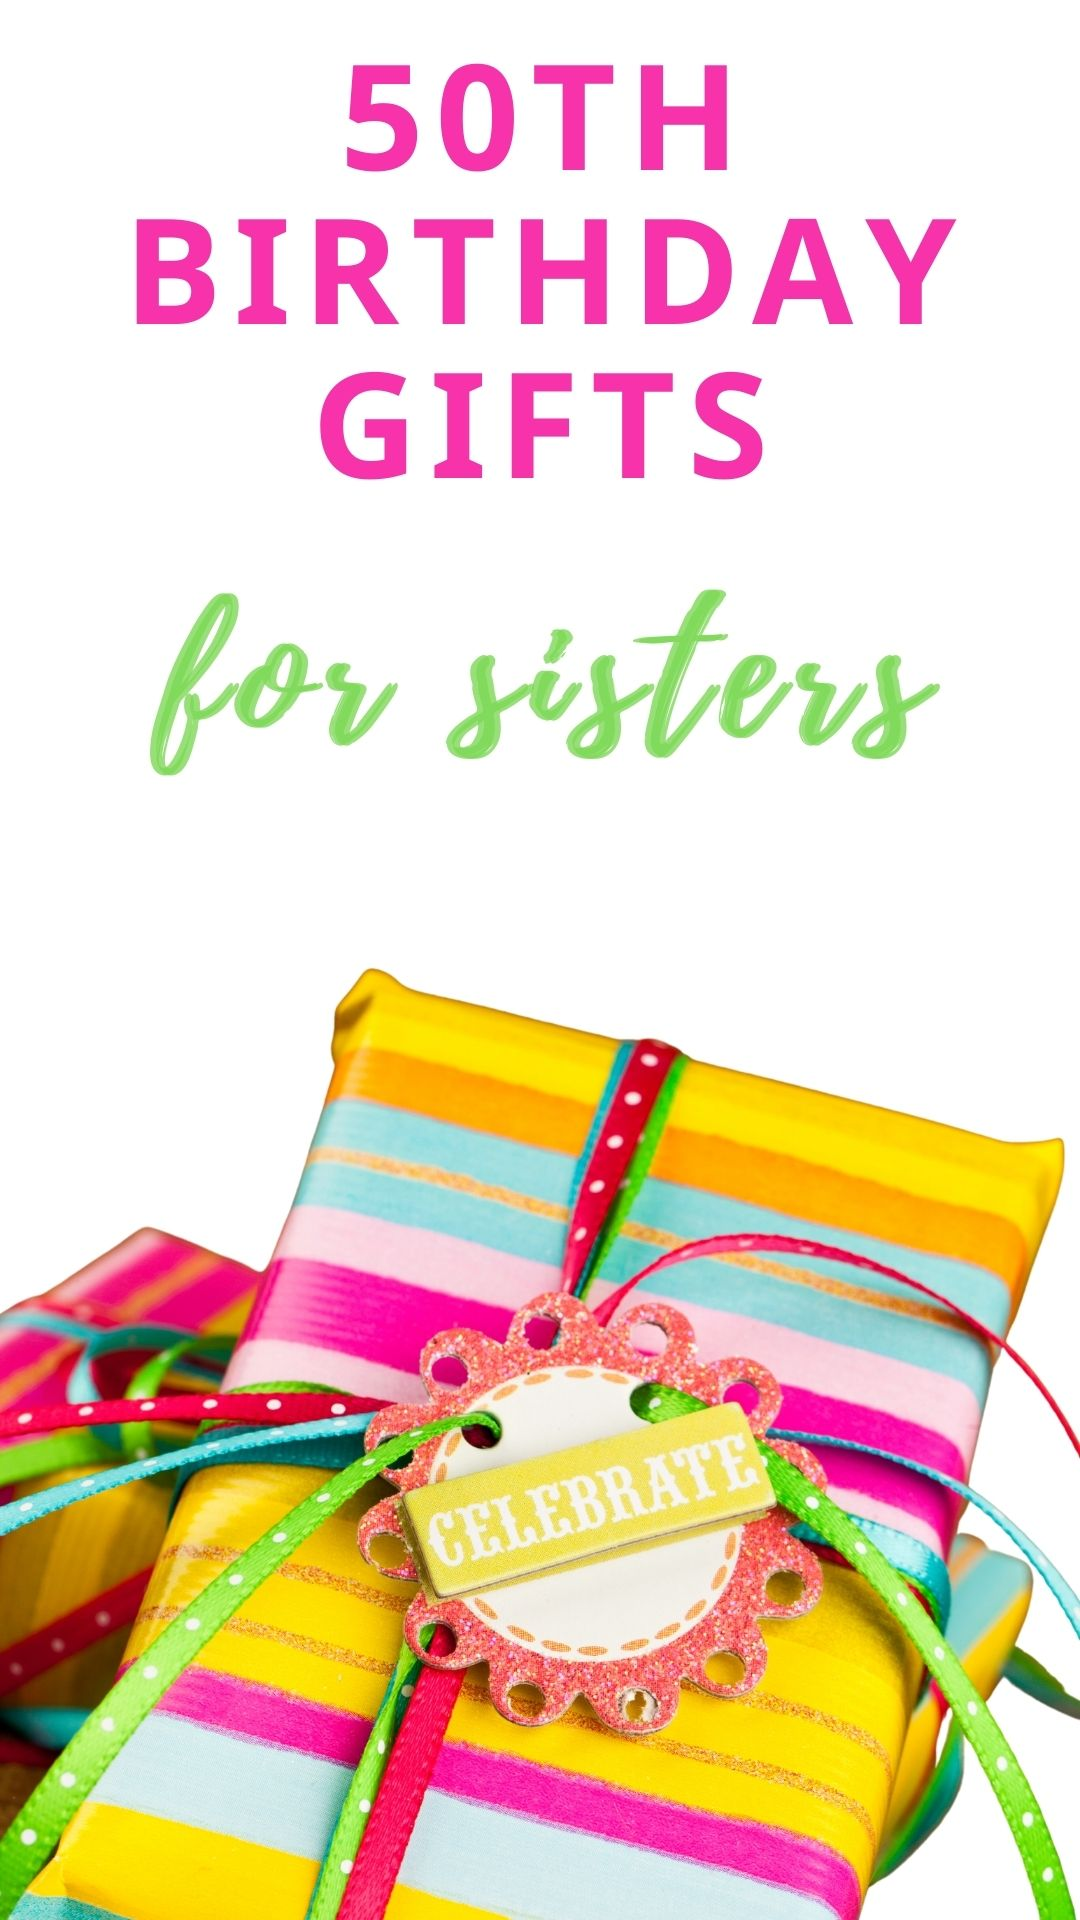 50th birthday gifts for sisters